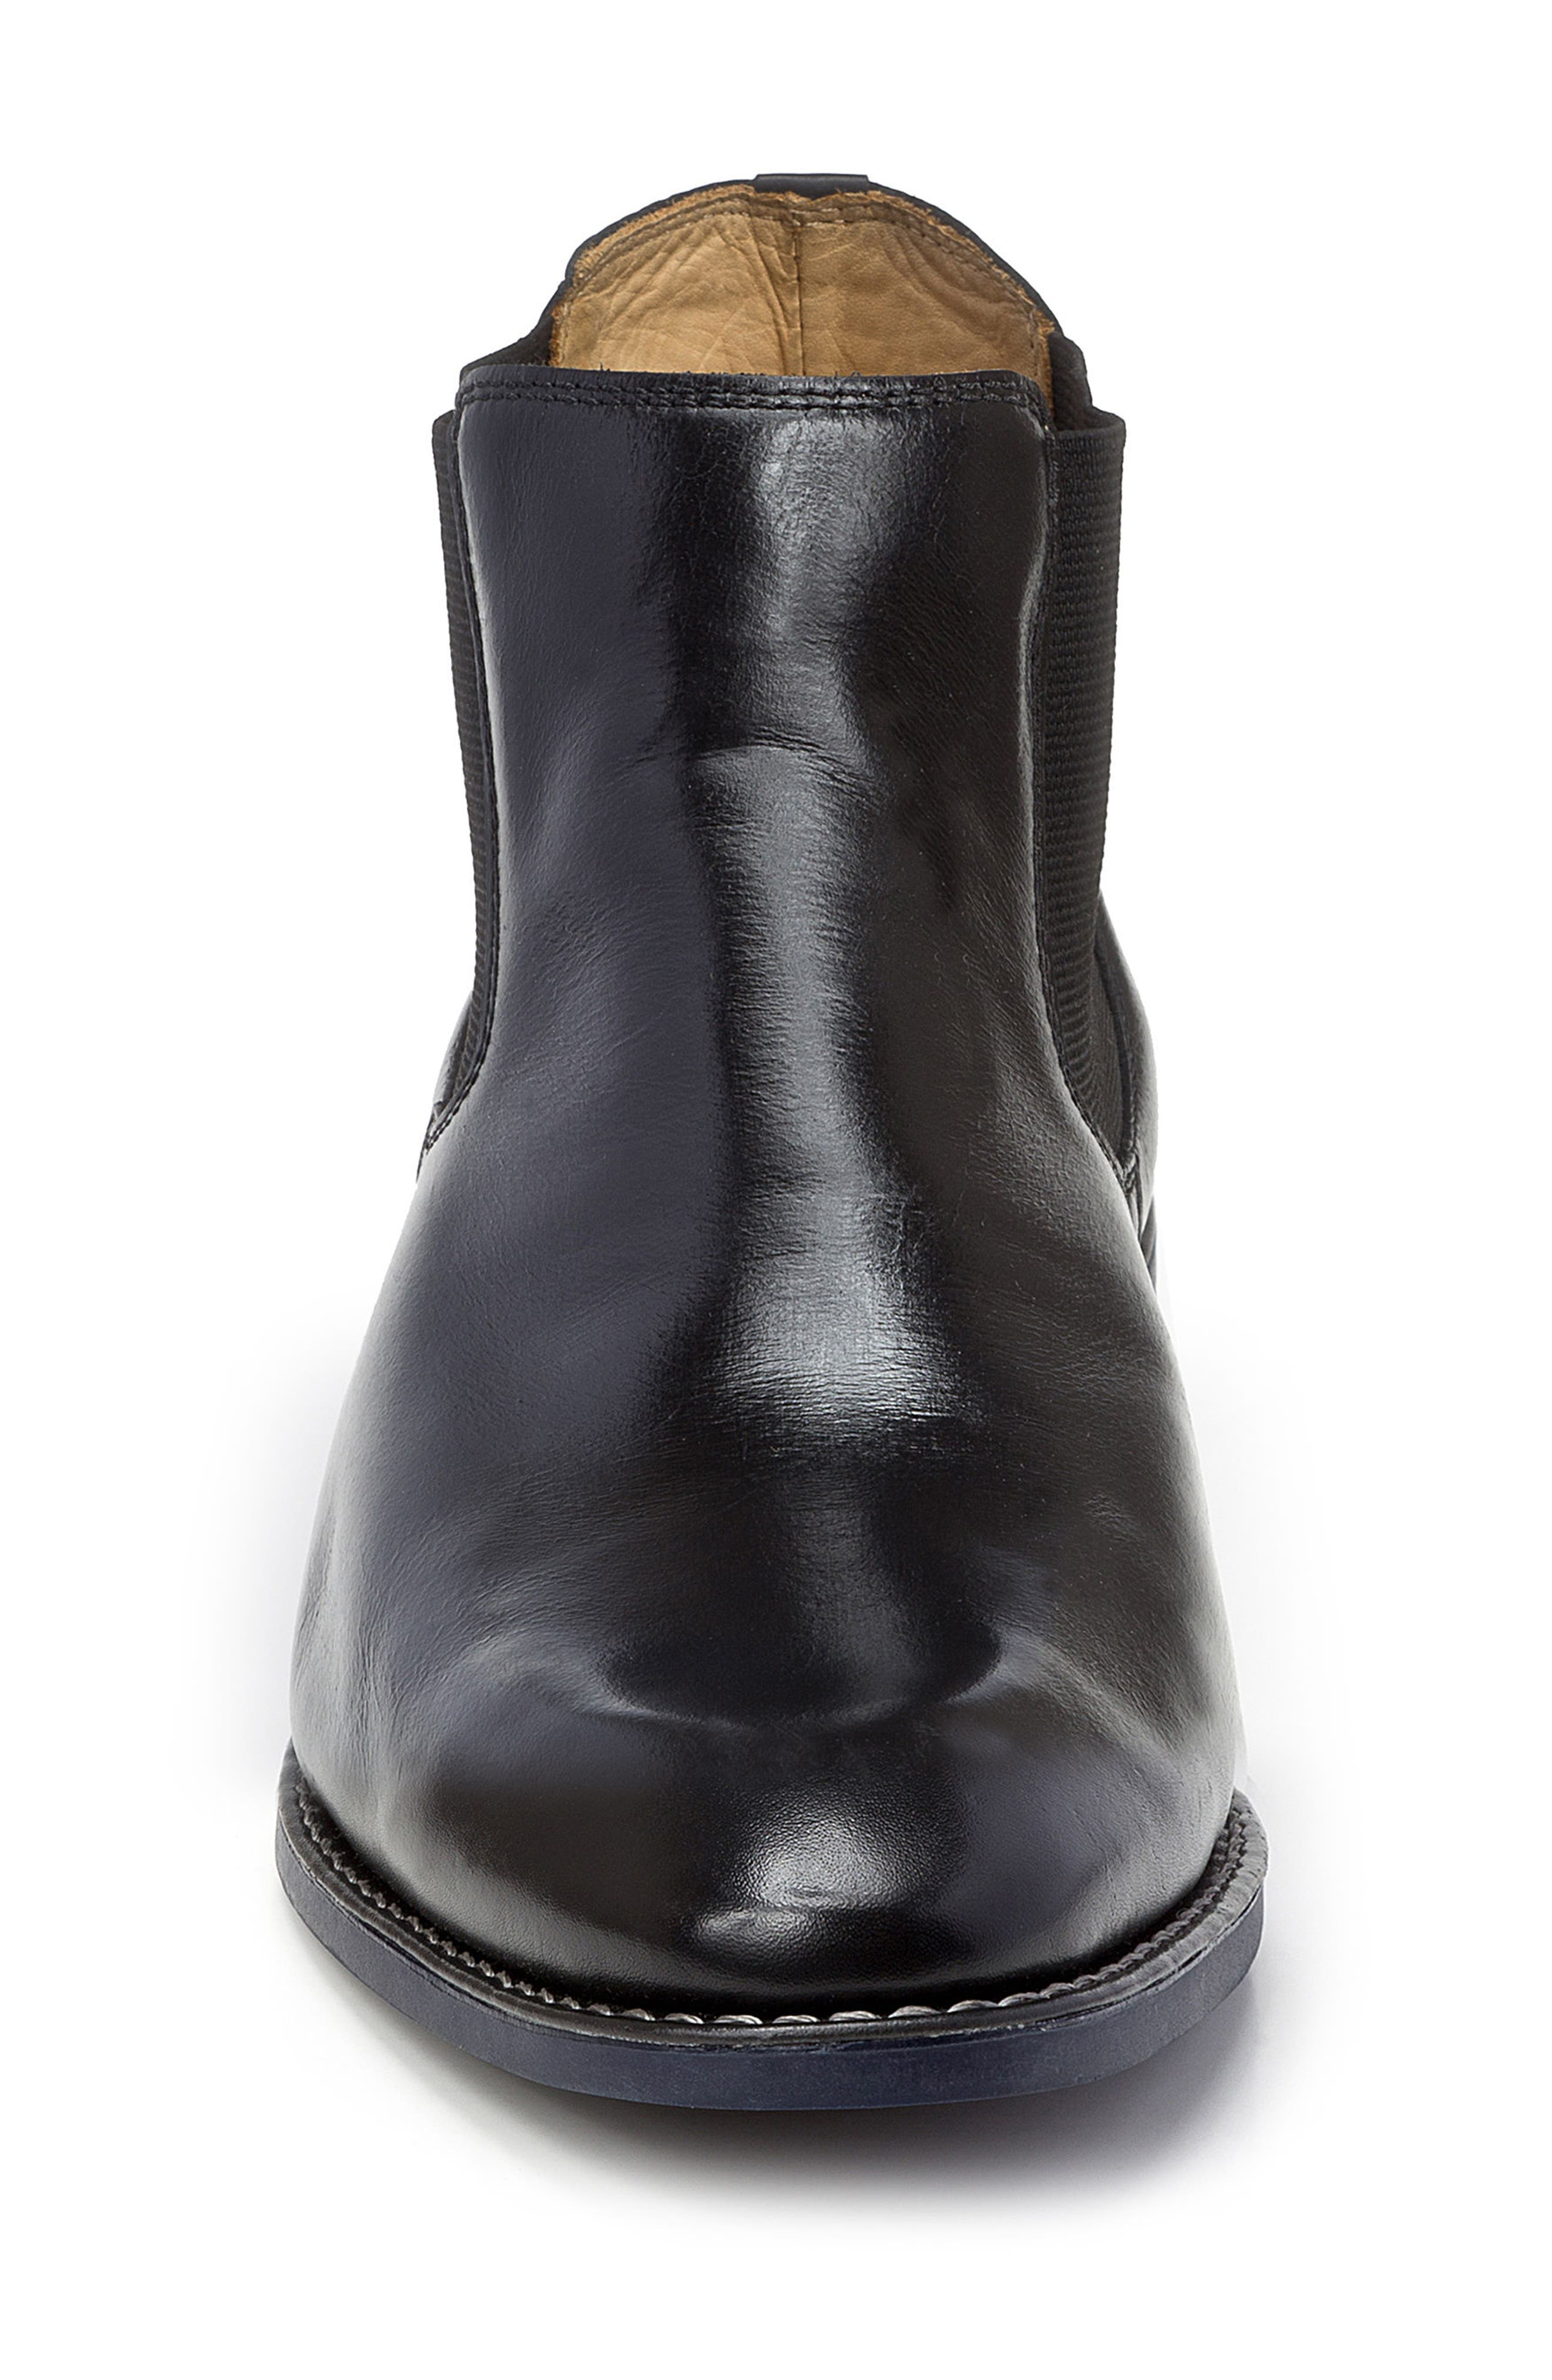 Marcus Chelsea Boot,                             Alternate thumbnail 4, color,                             BLACK LEATHER